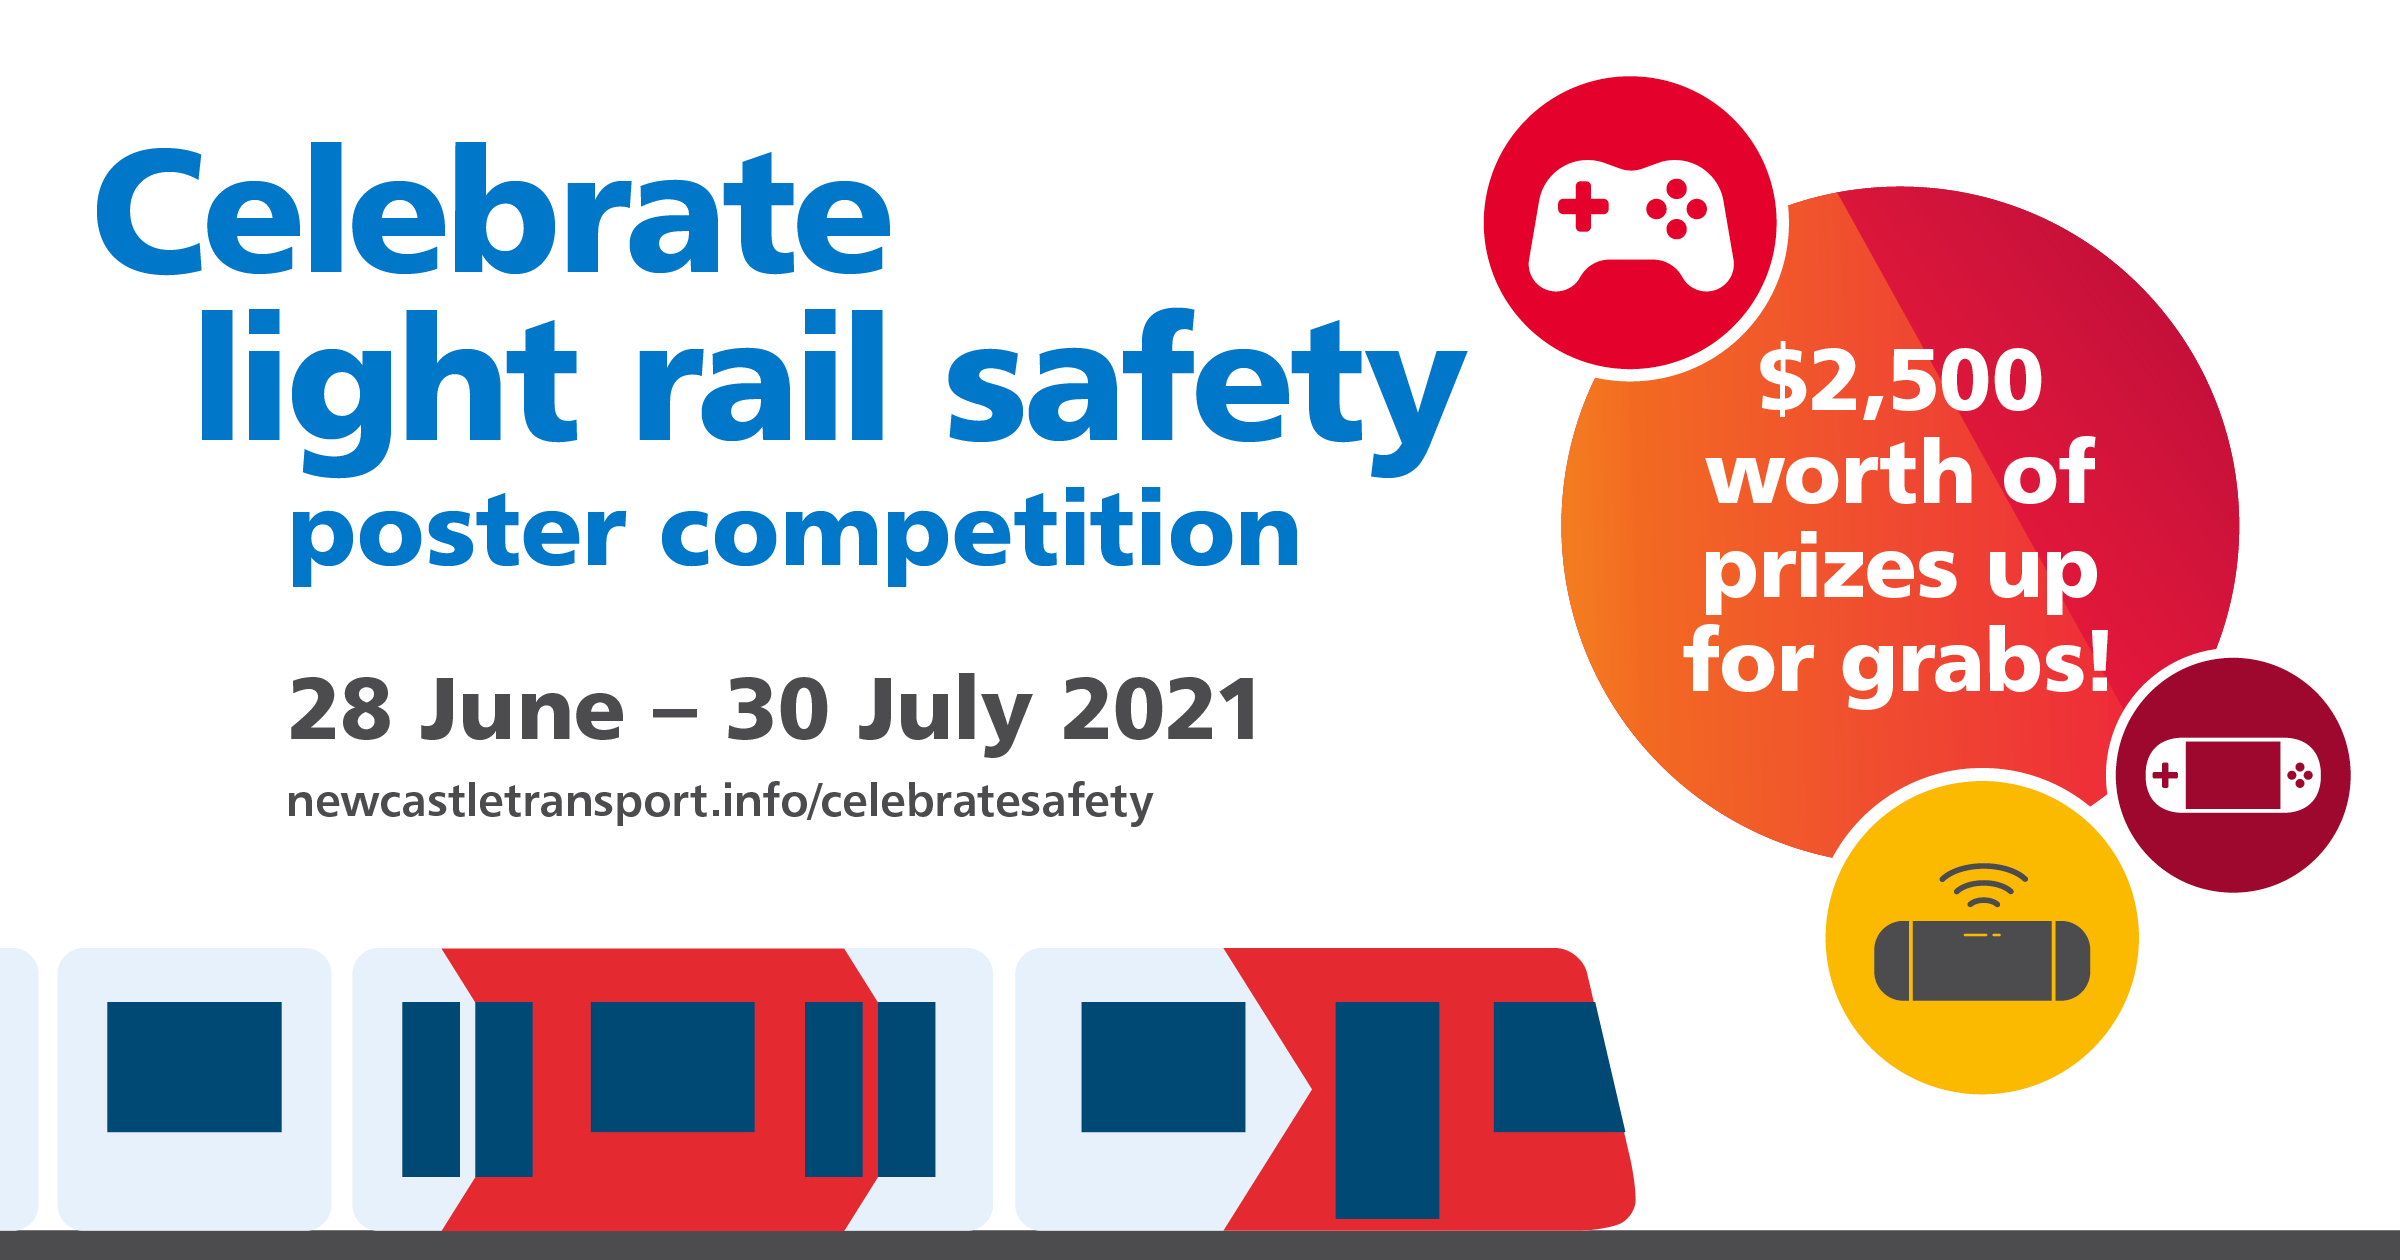 Celebrate light rail safety poster competition. 28 June - 30 July 2021. $2500 worth of prizes up for grabs.